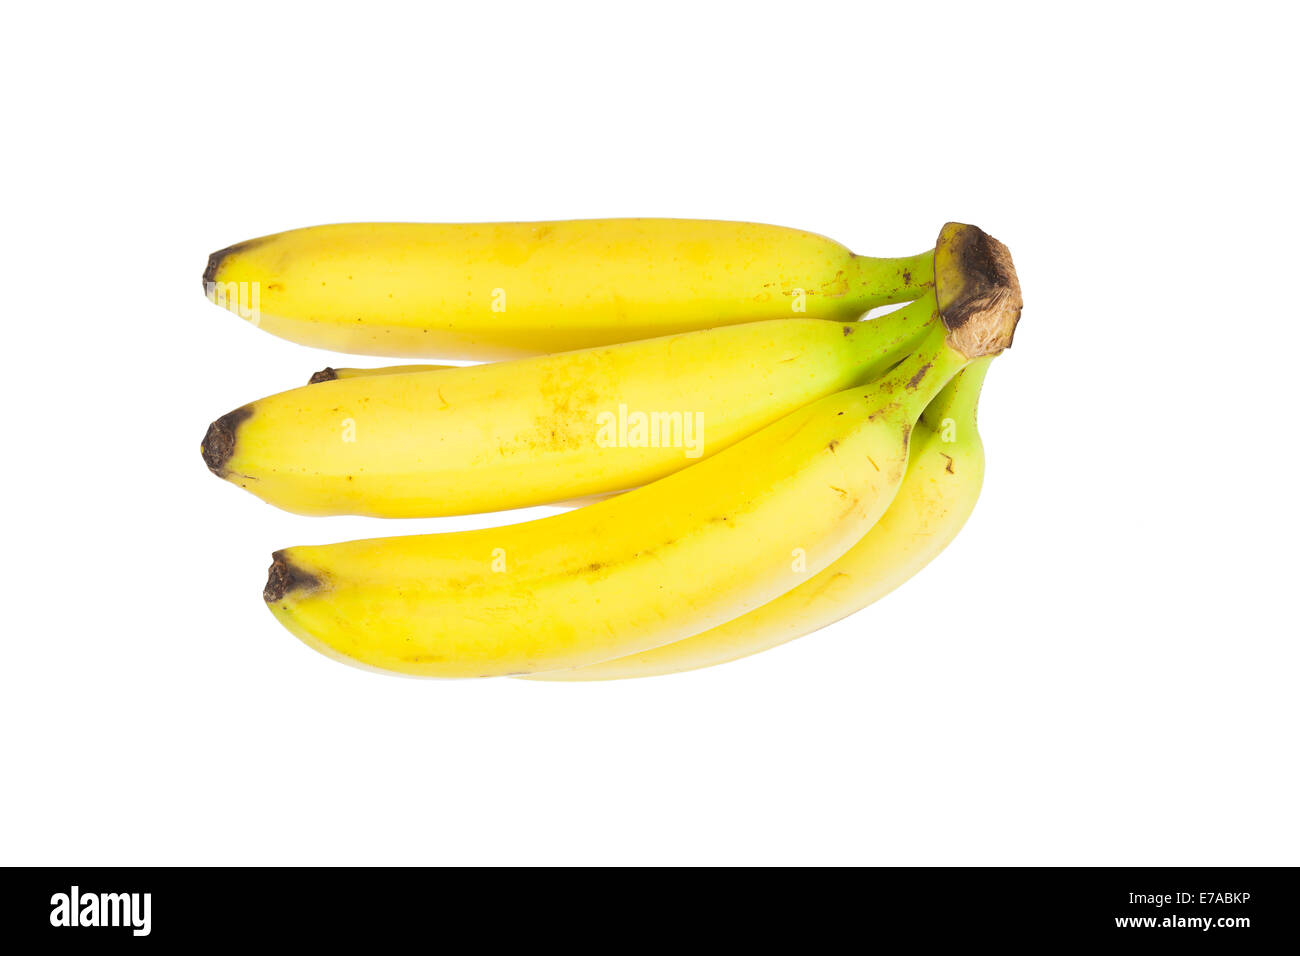 Bunch of bananas on a white background - Stock Image